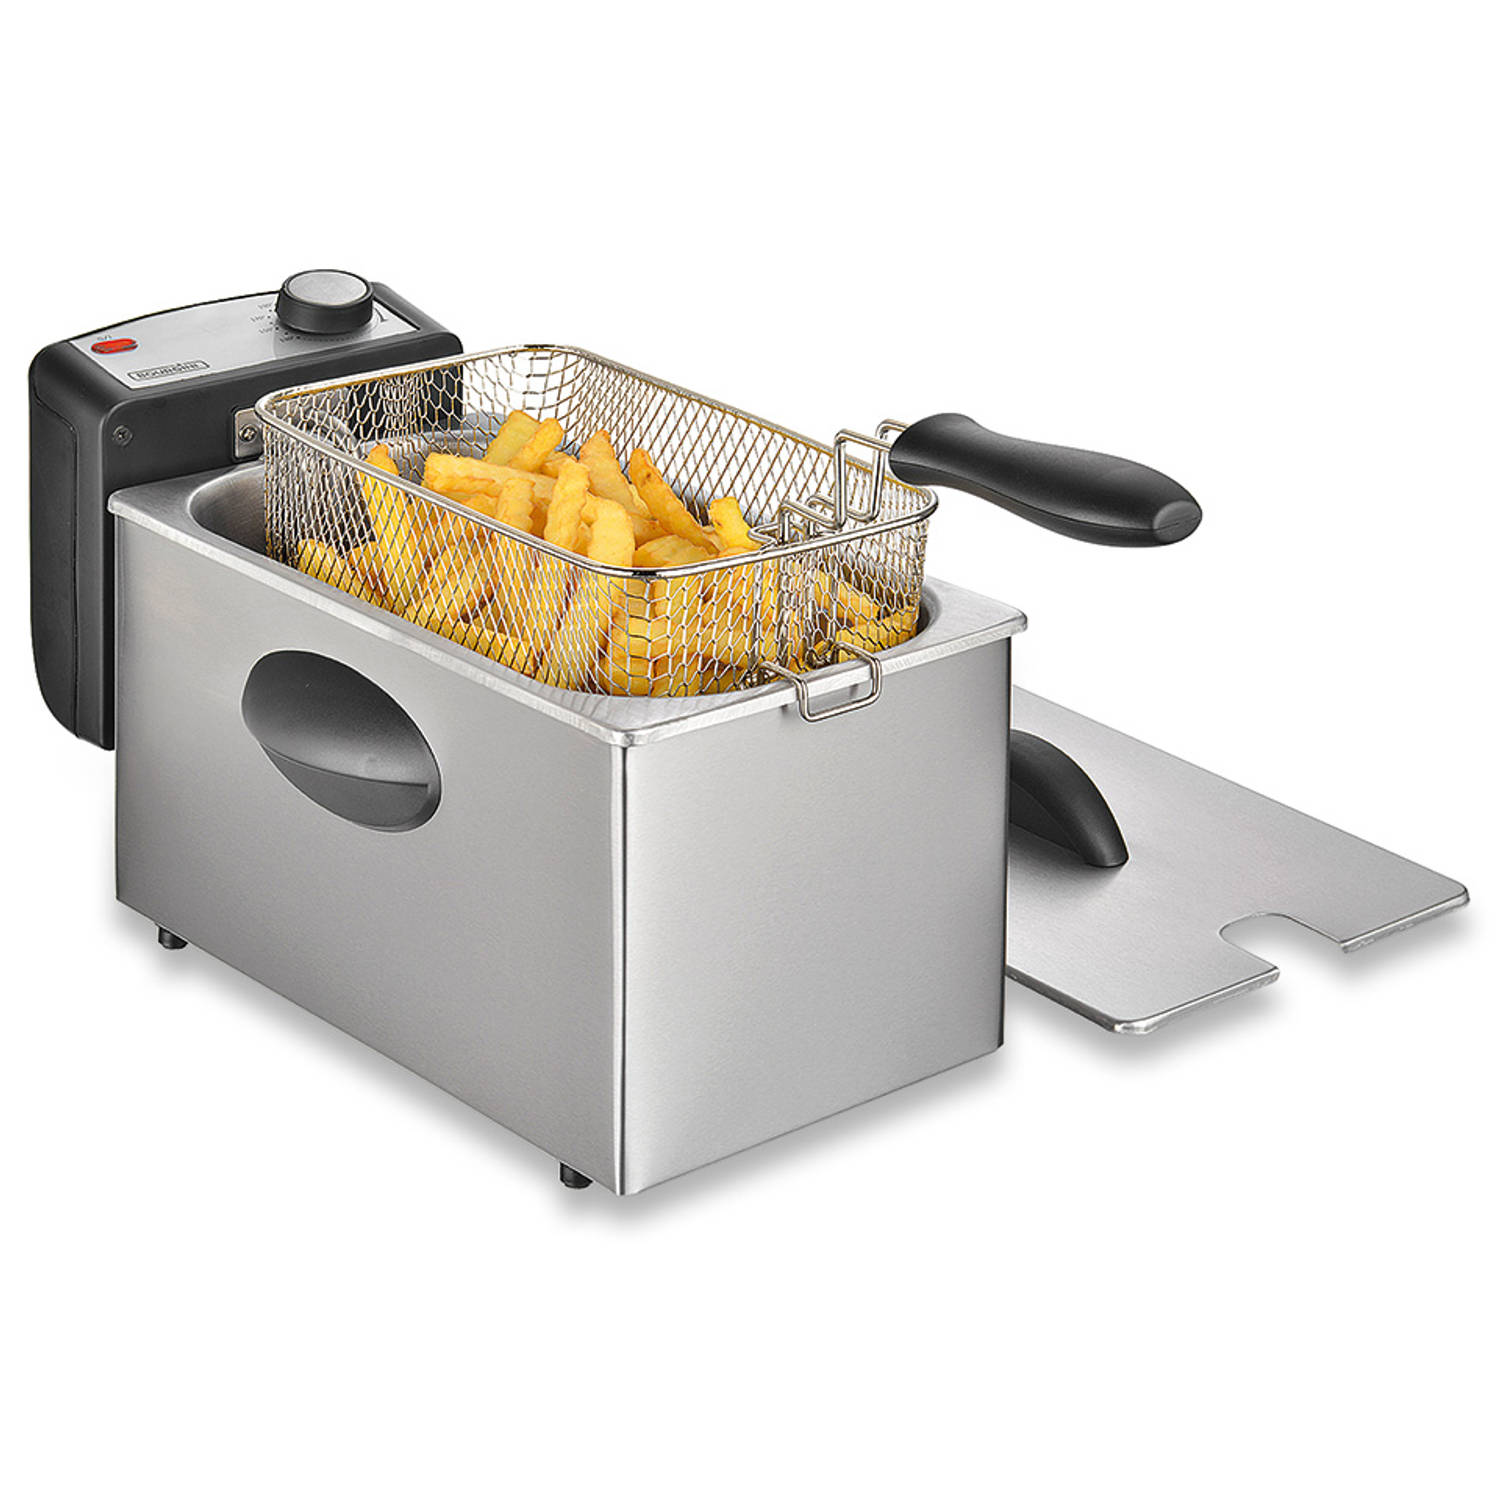 Bourgini Classic Deep Fryer friteuse 3.0L 18.2120.00.00